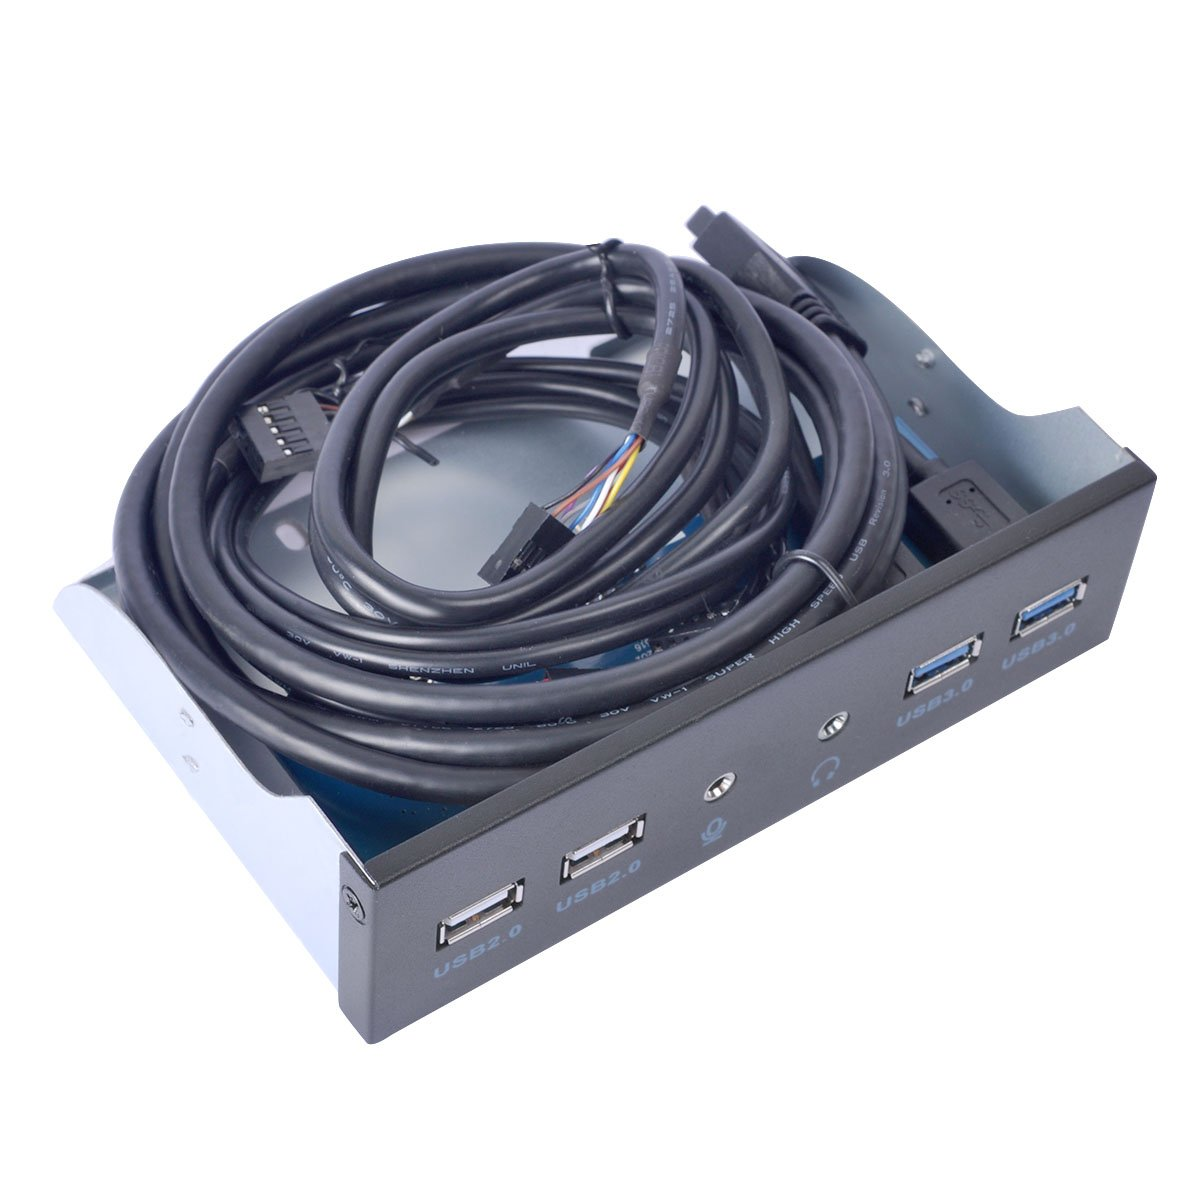 UCEC 5.25 Inch Front Panel USB Hub - With USB 3.0 2 Ports & USB 2.0 2 Ports & HD AUDIO port